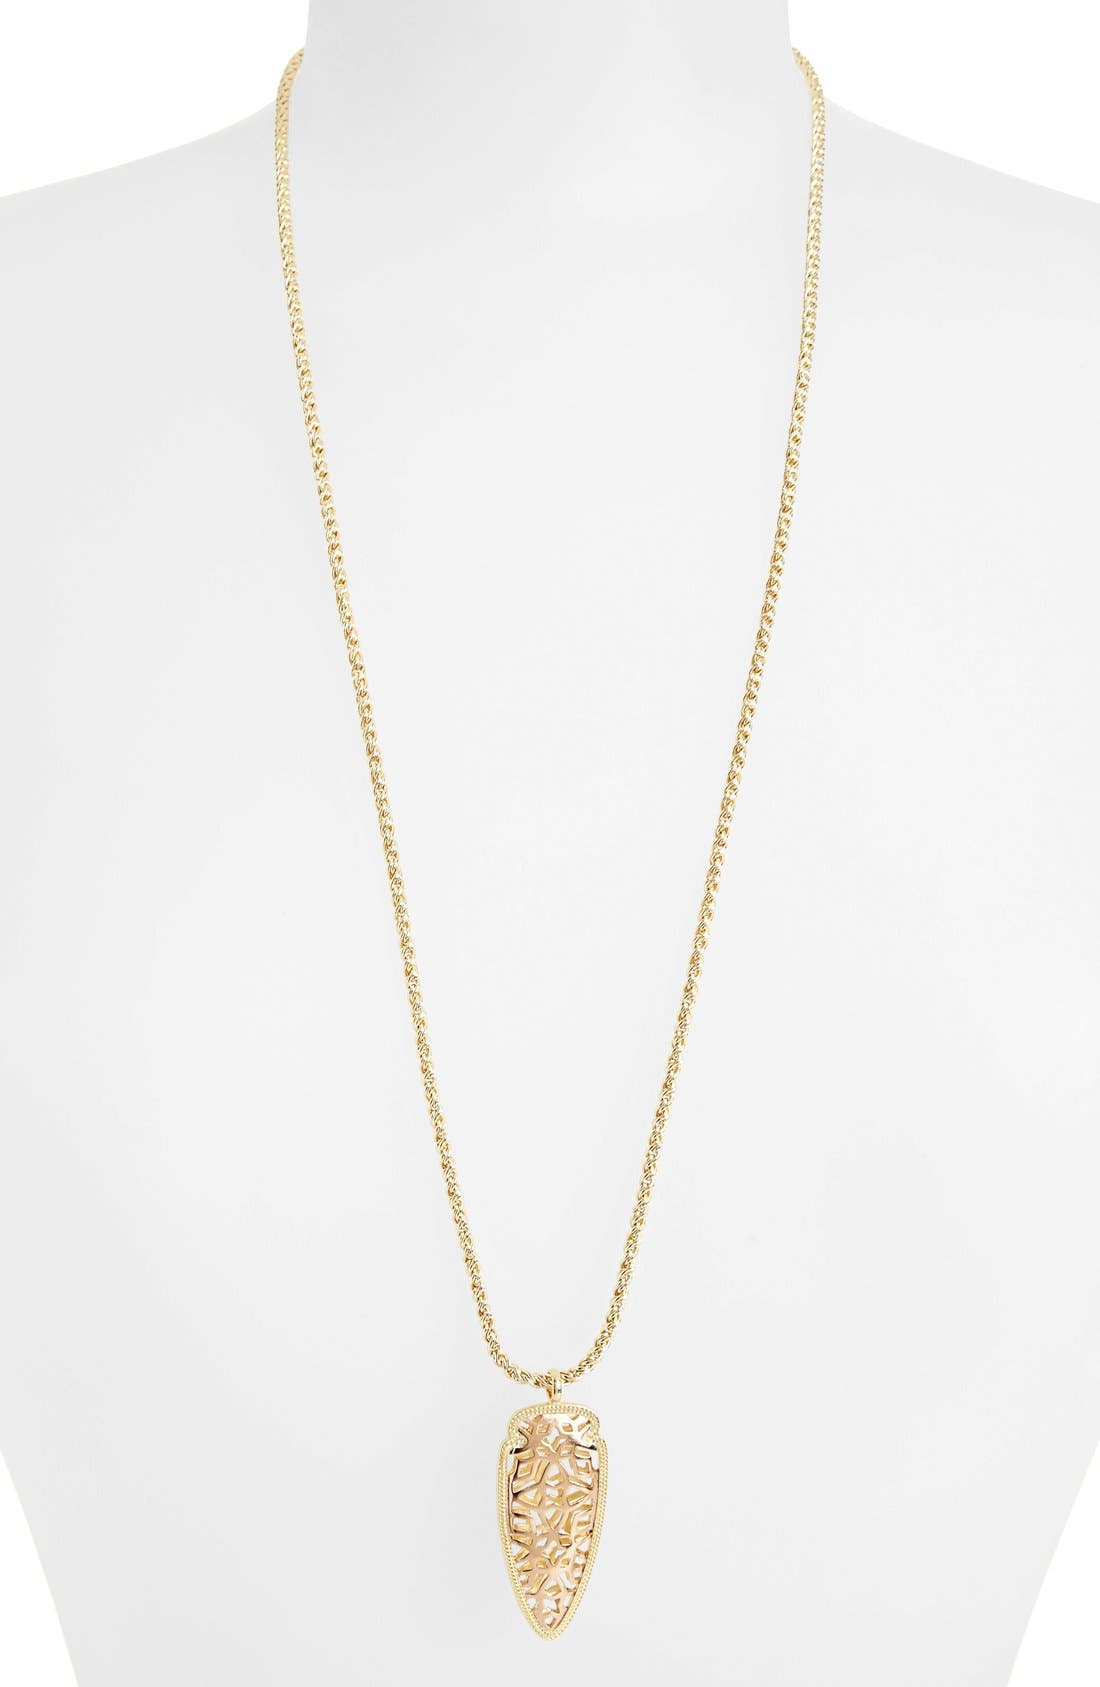 Main Image - Kendra Scott 'Glam Rocks - Sienna' Pendant Necklace